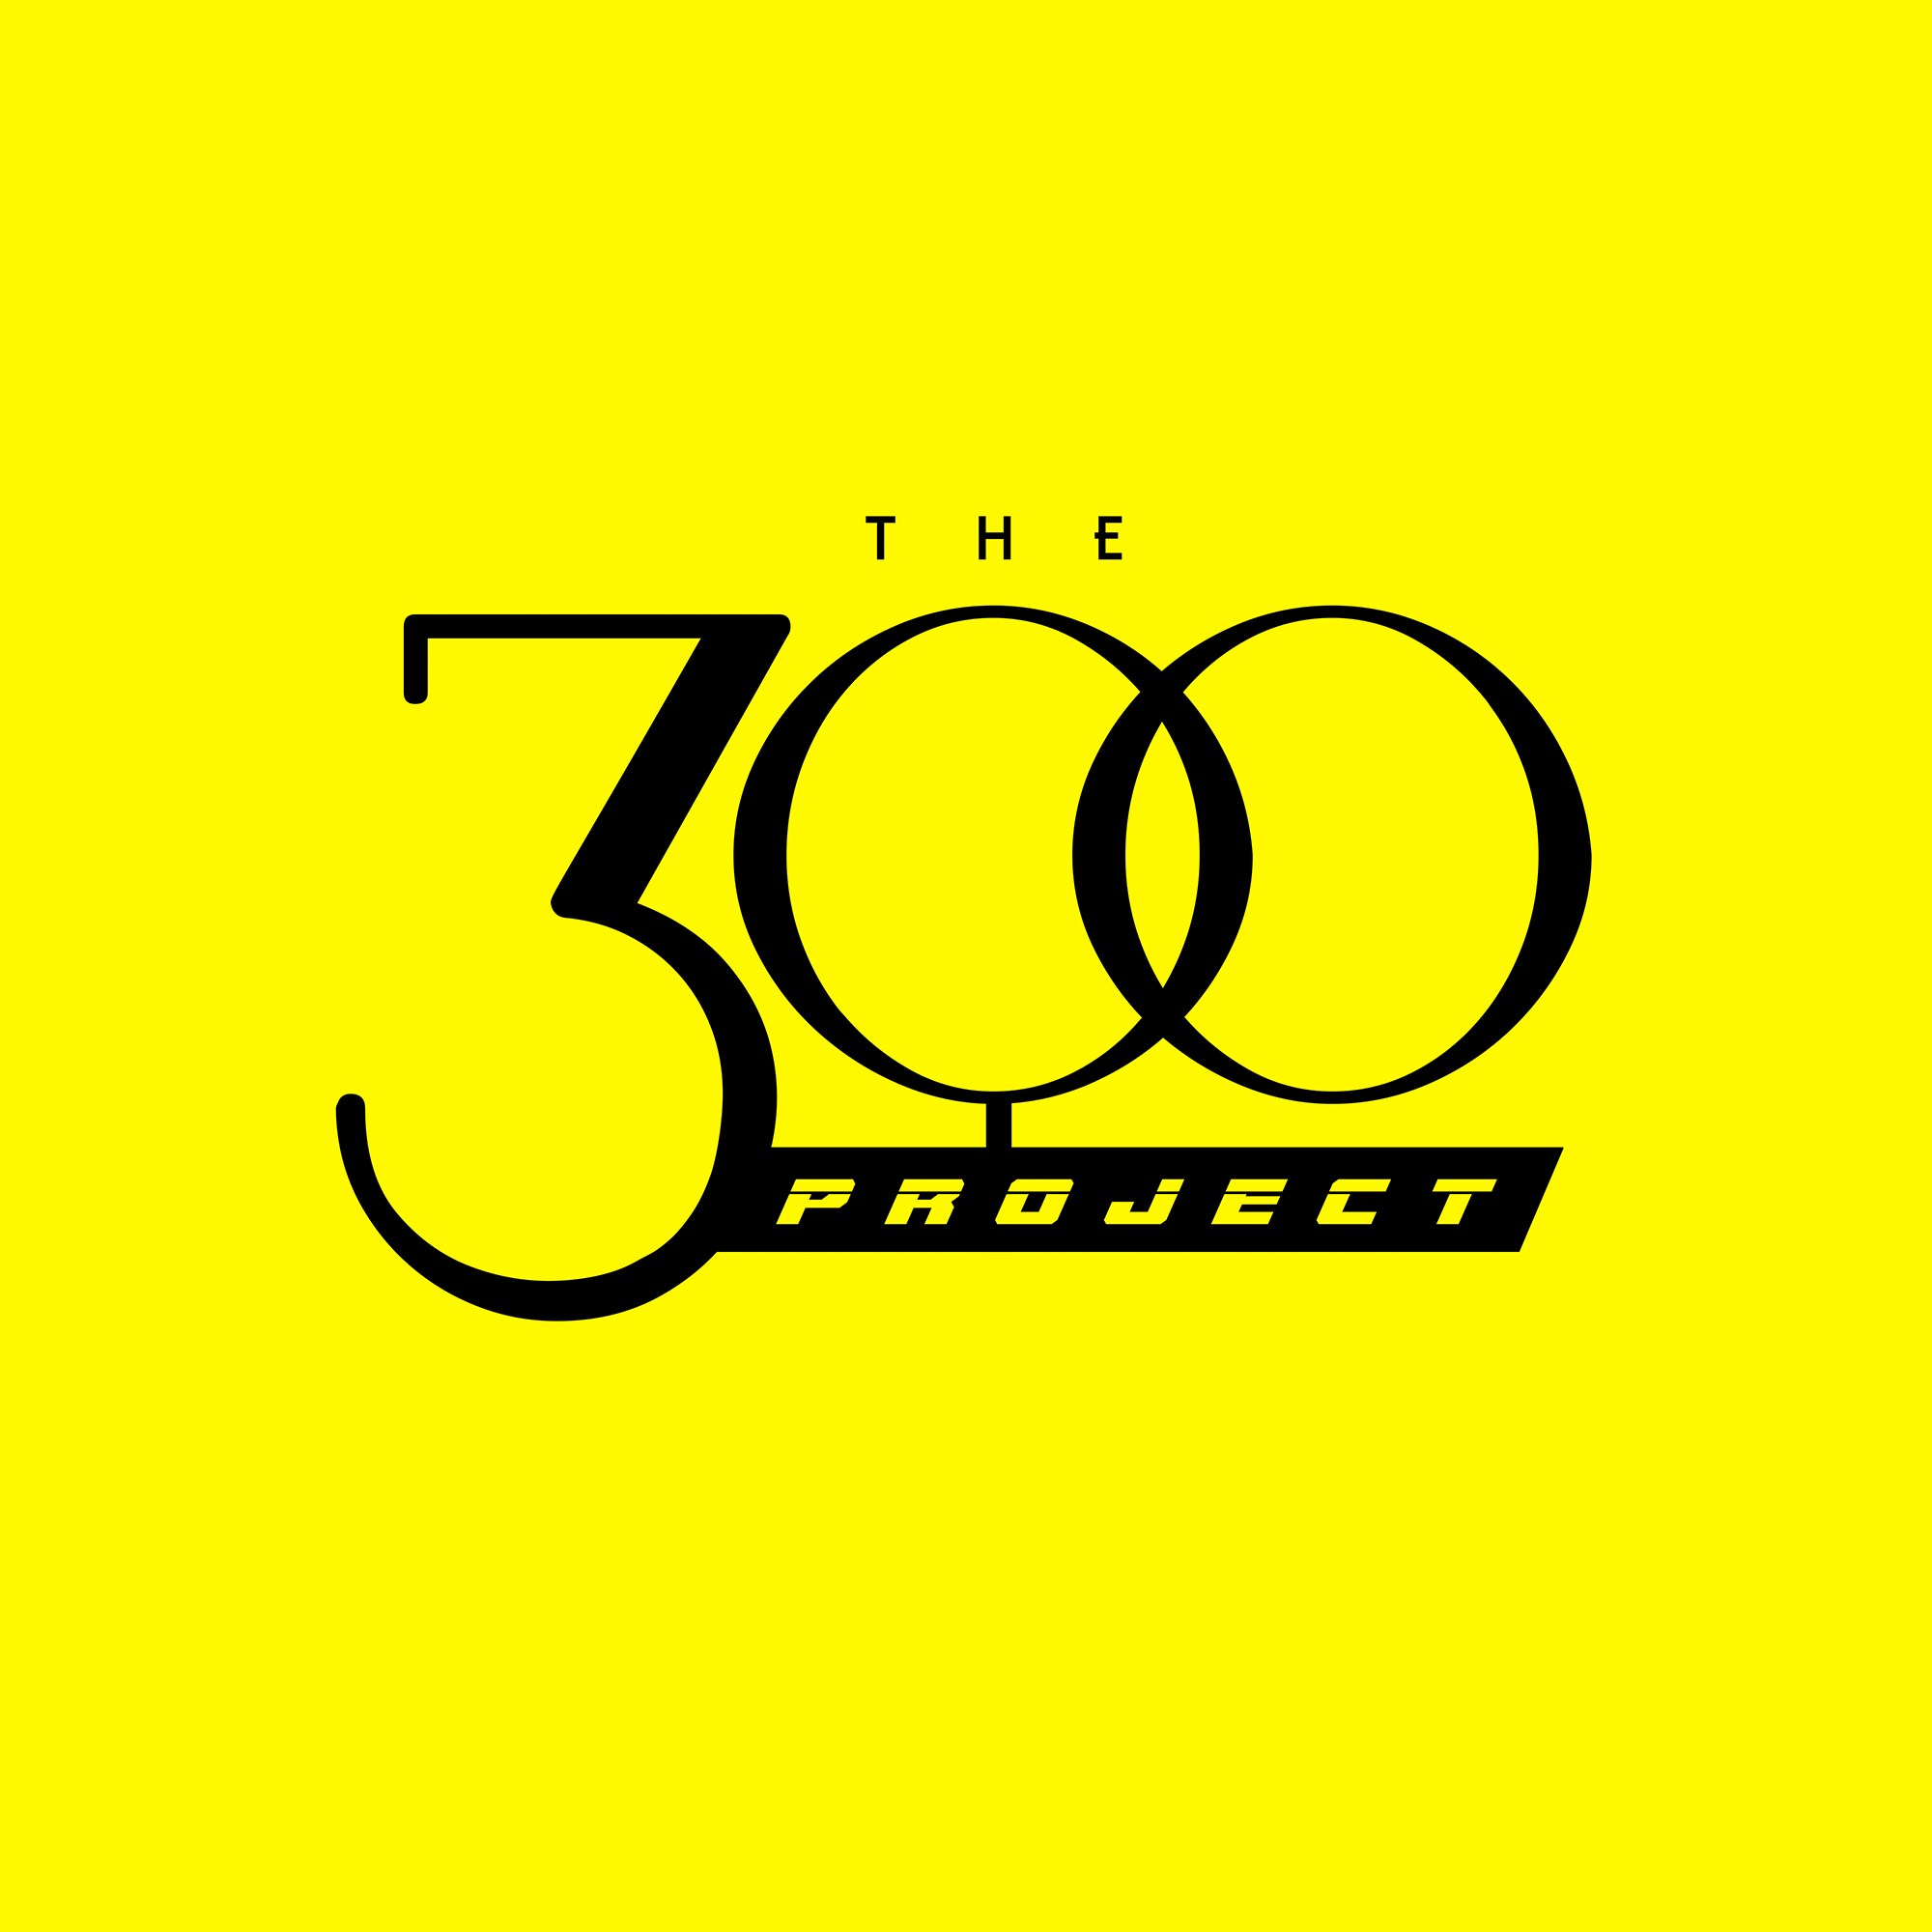 The 300 Project